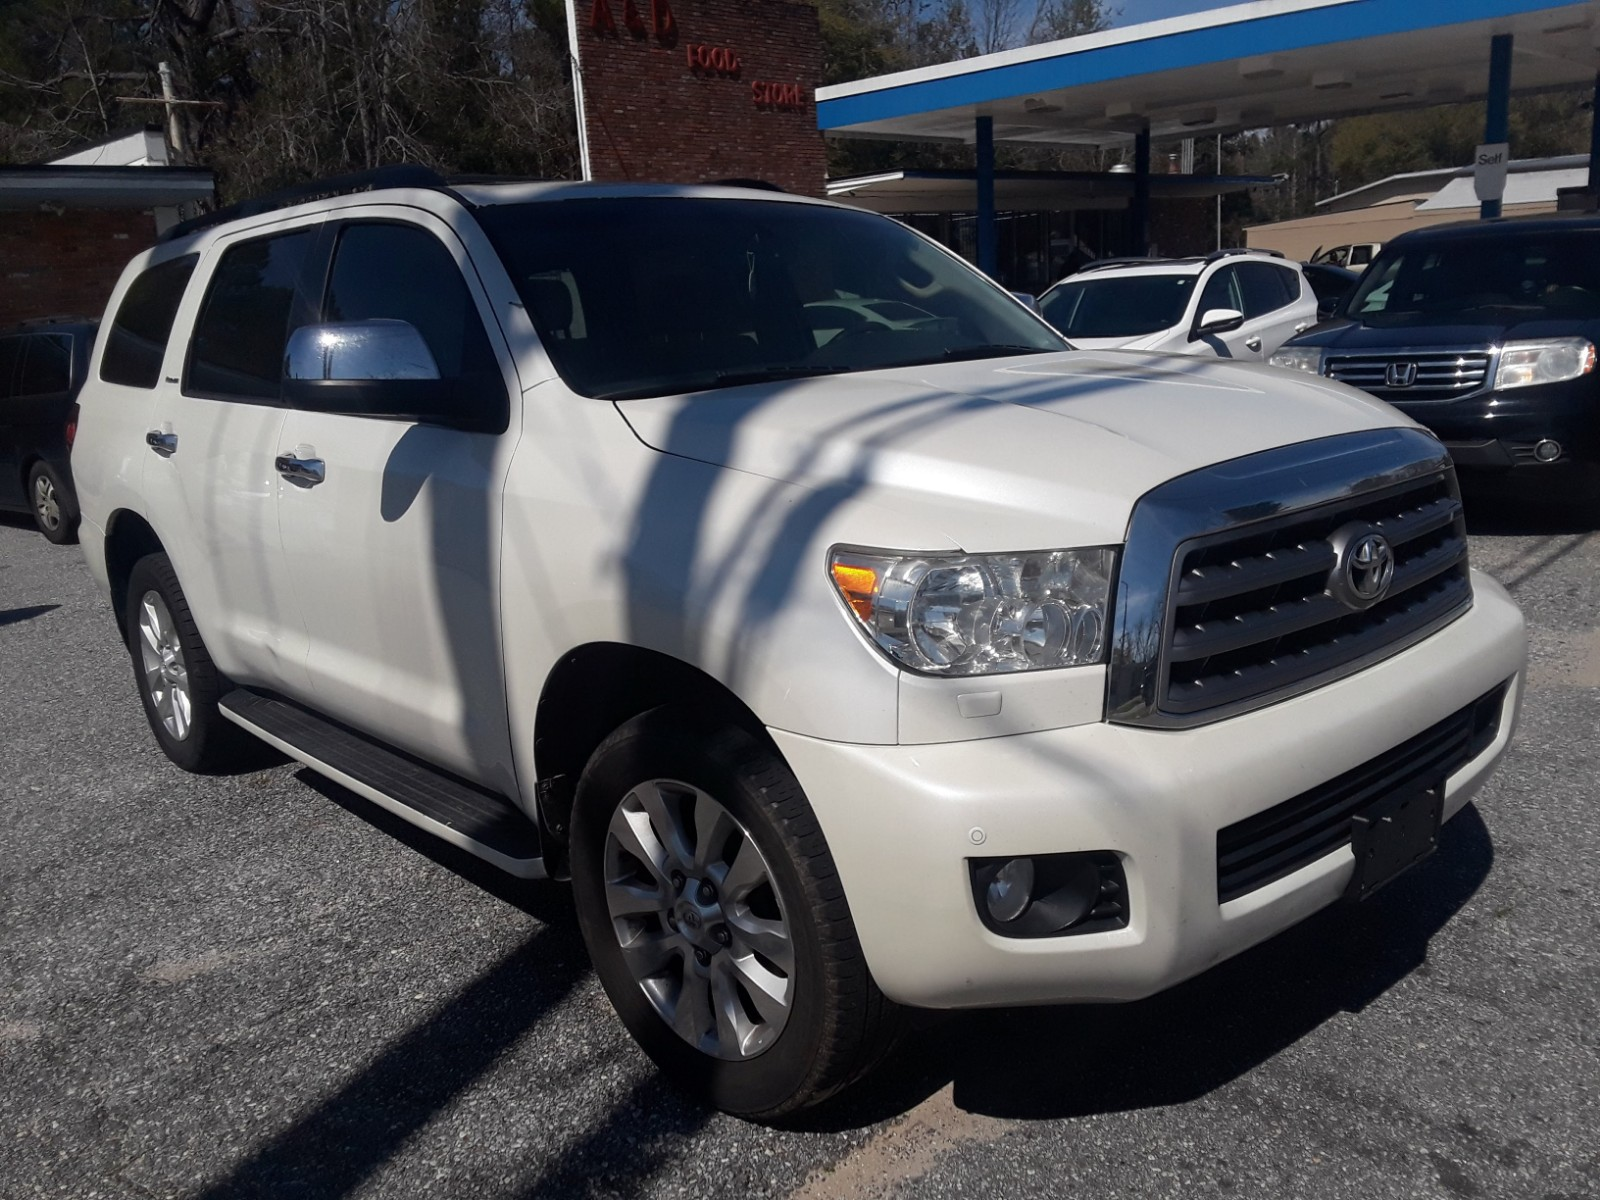 5TDYY5G10DS045286 - 2013 Toyota Sequoia Pl 5.7L Left View